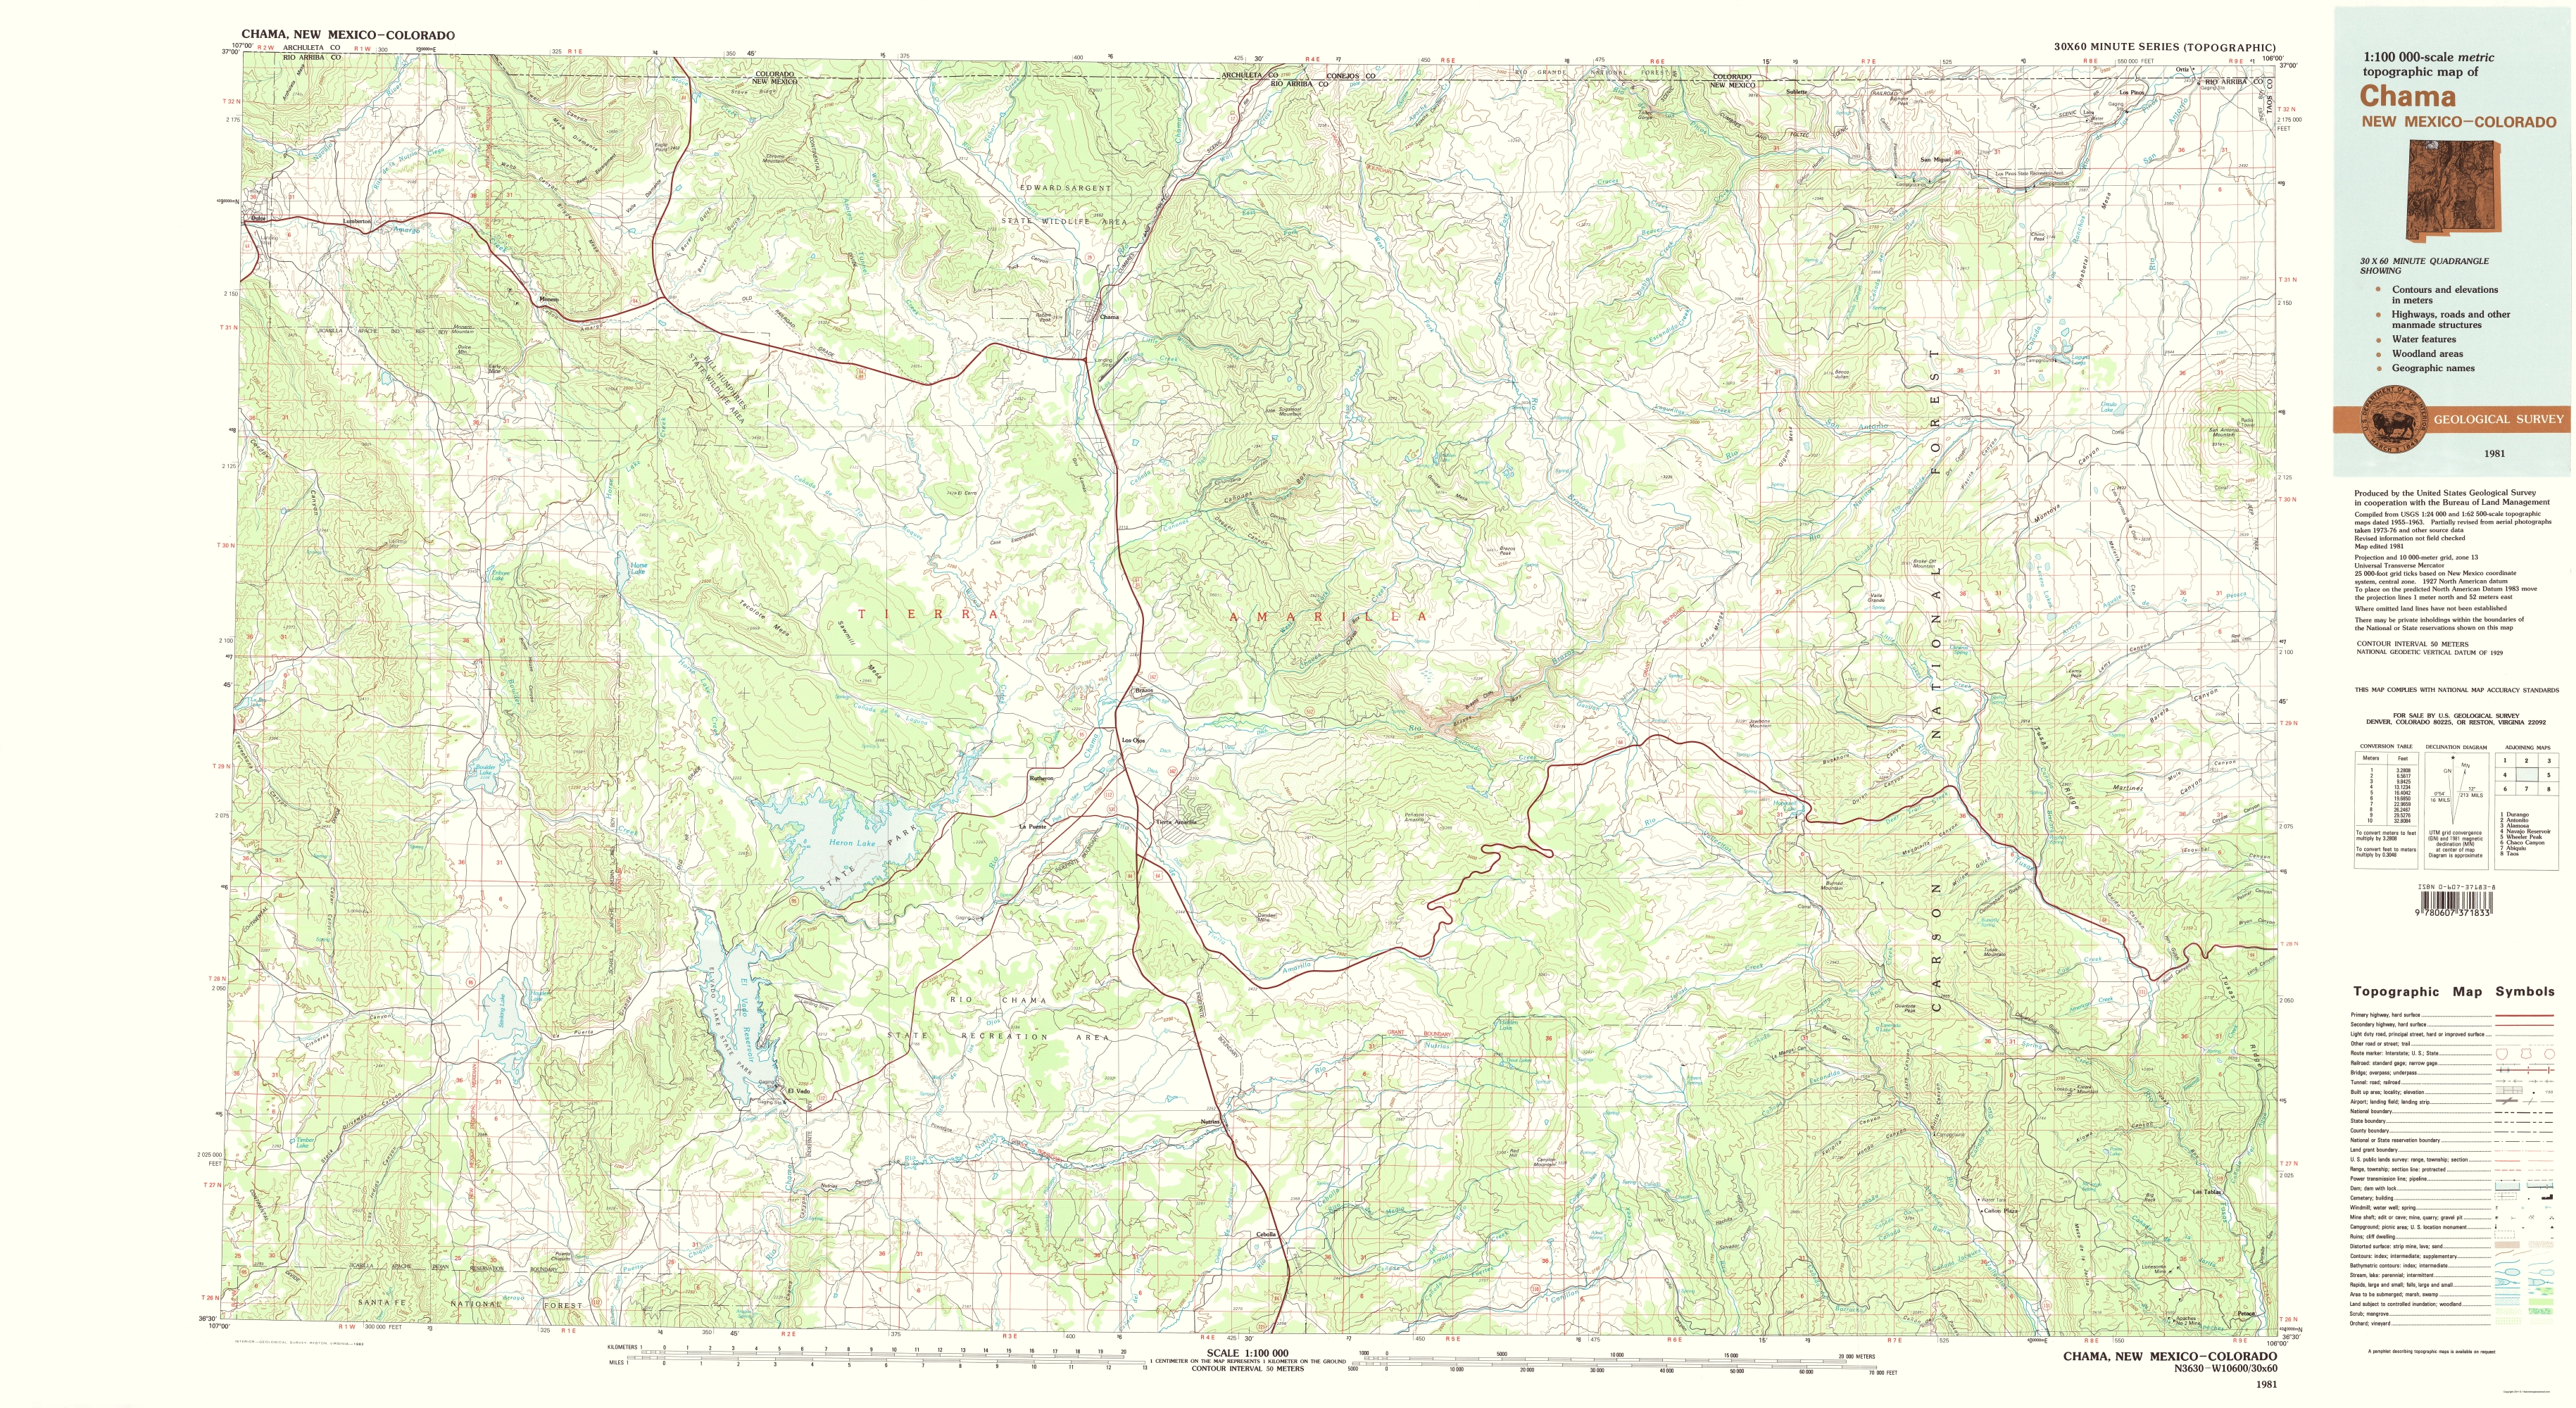 Old Topographical Map Chama New Mexico Colorado - Elevation map of colorado